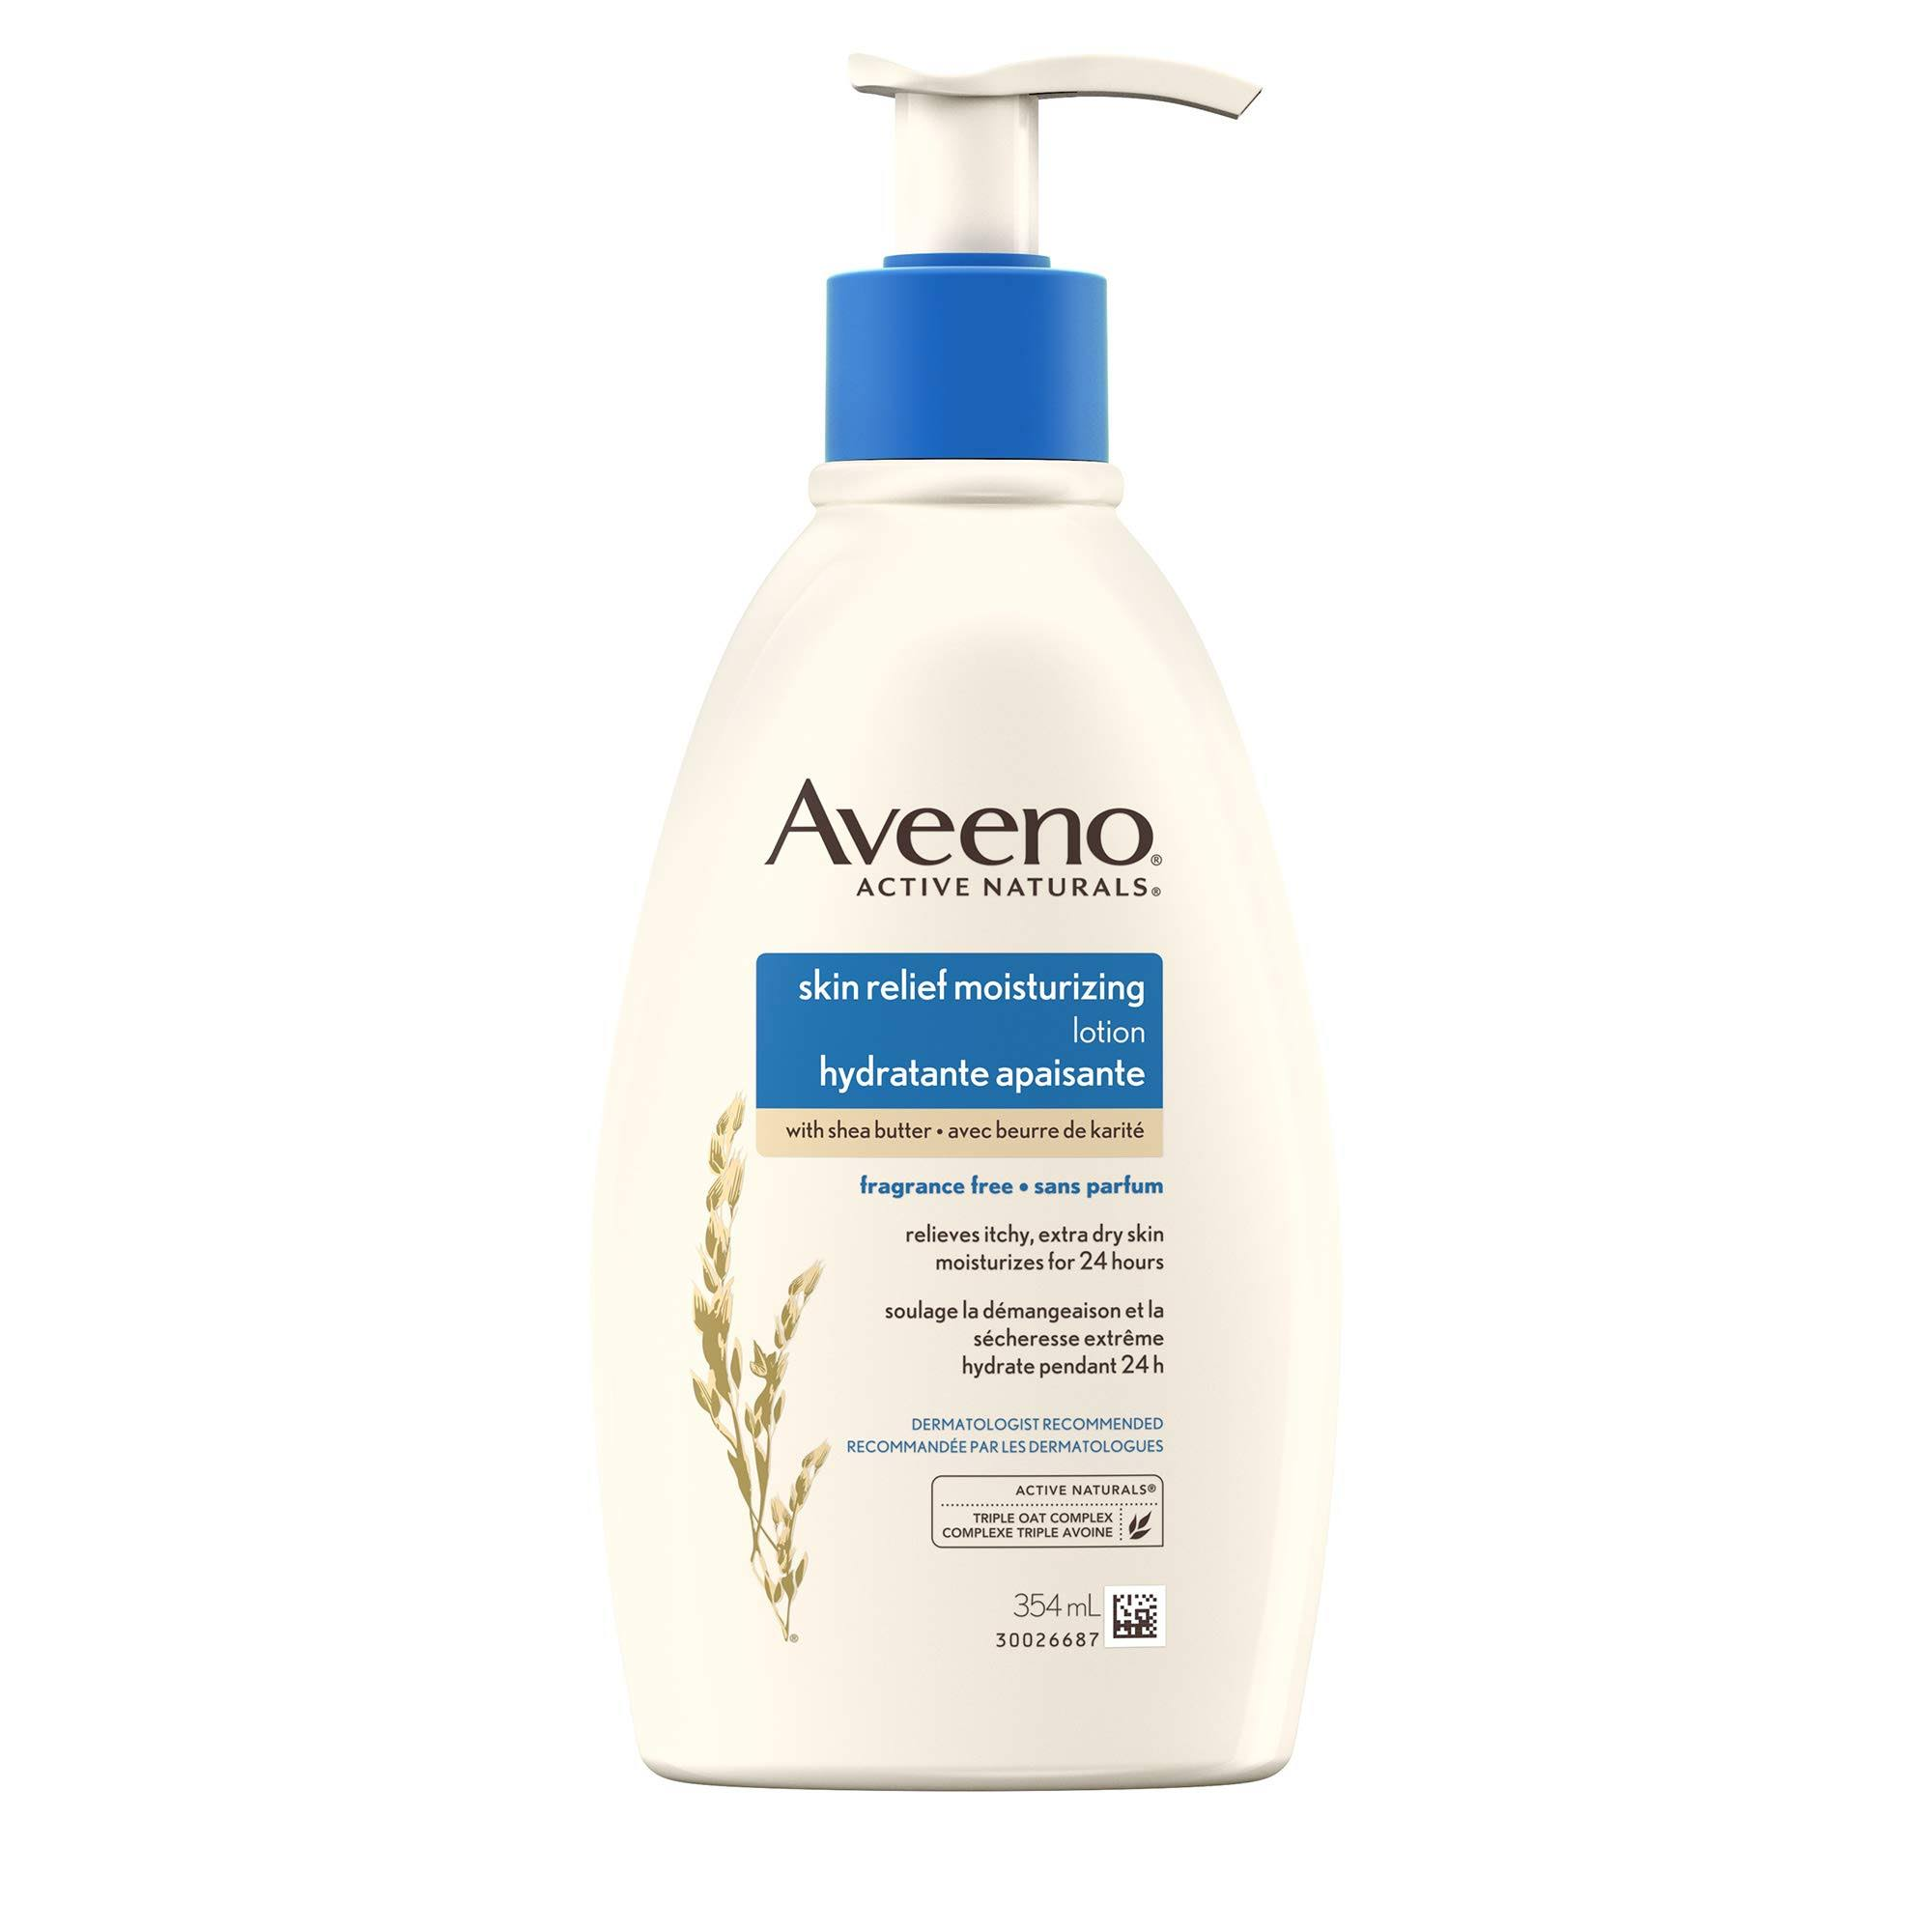 Aveeno Skin Active Naturals Relief Moisturizing Lotion - 354ml